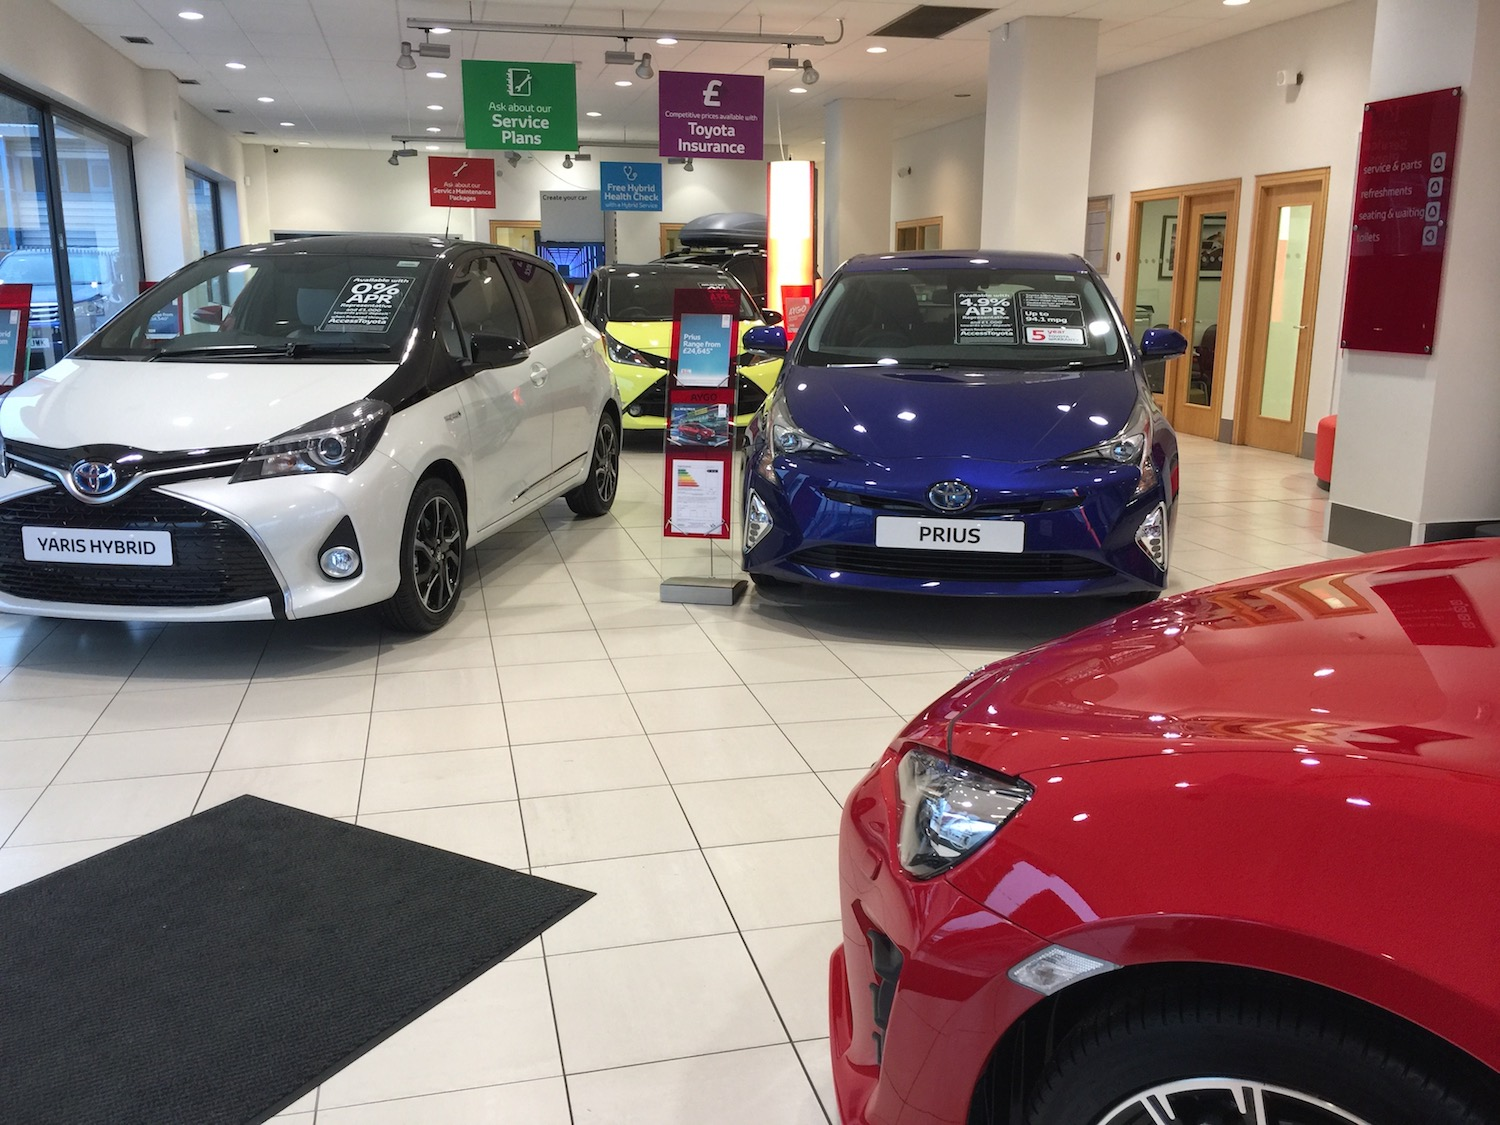 slm-toyota-showroom-yaris-hybrid-left-prius-right-aygo-middle